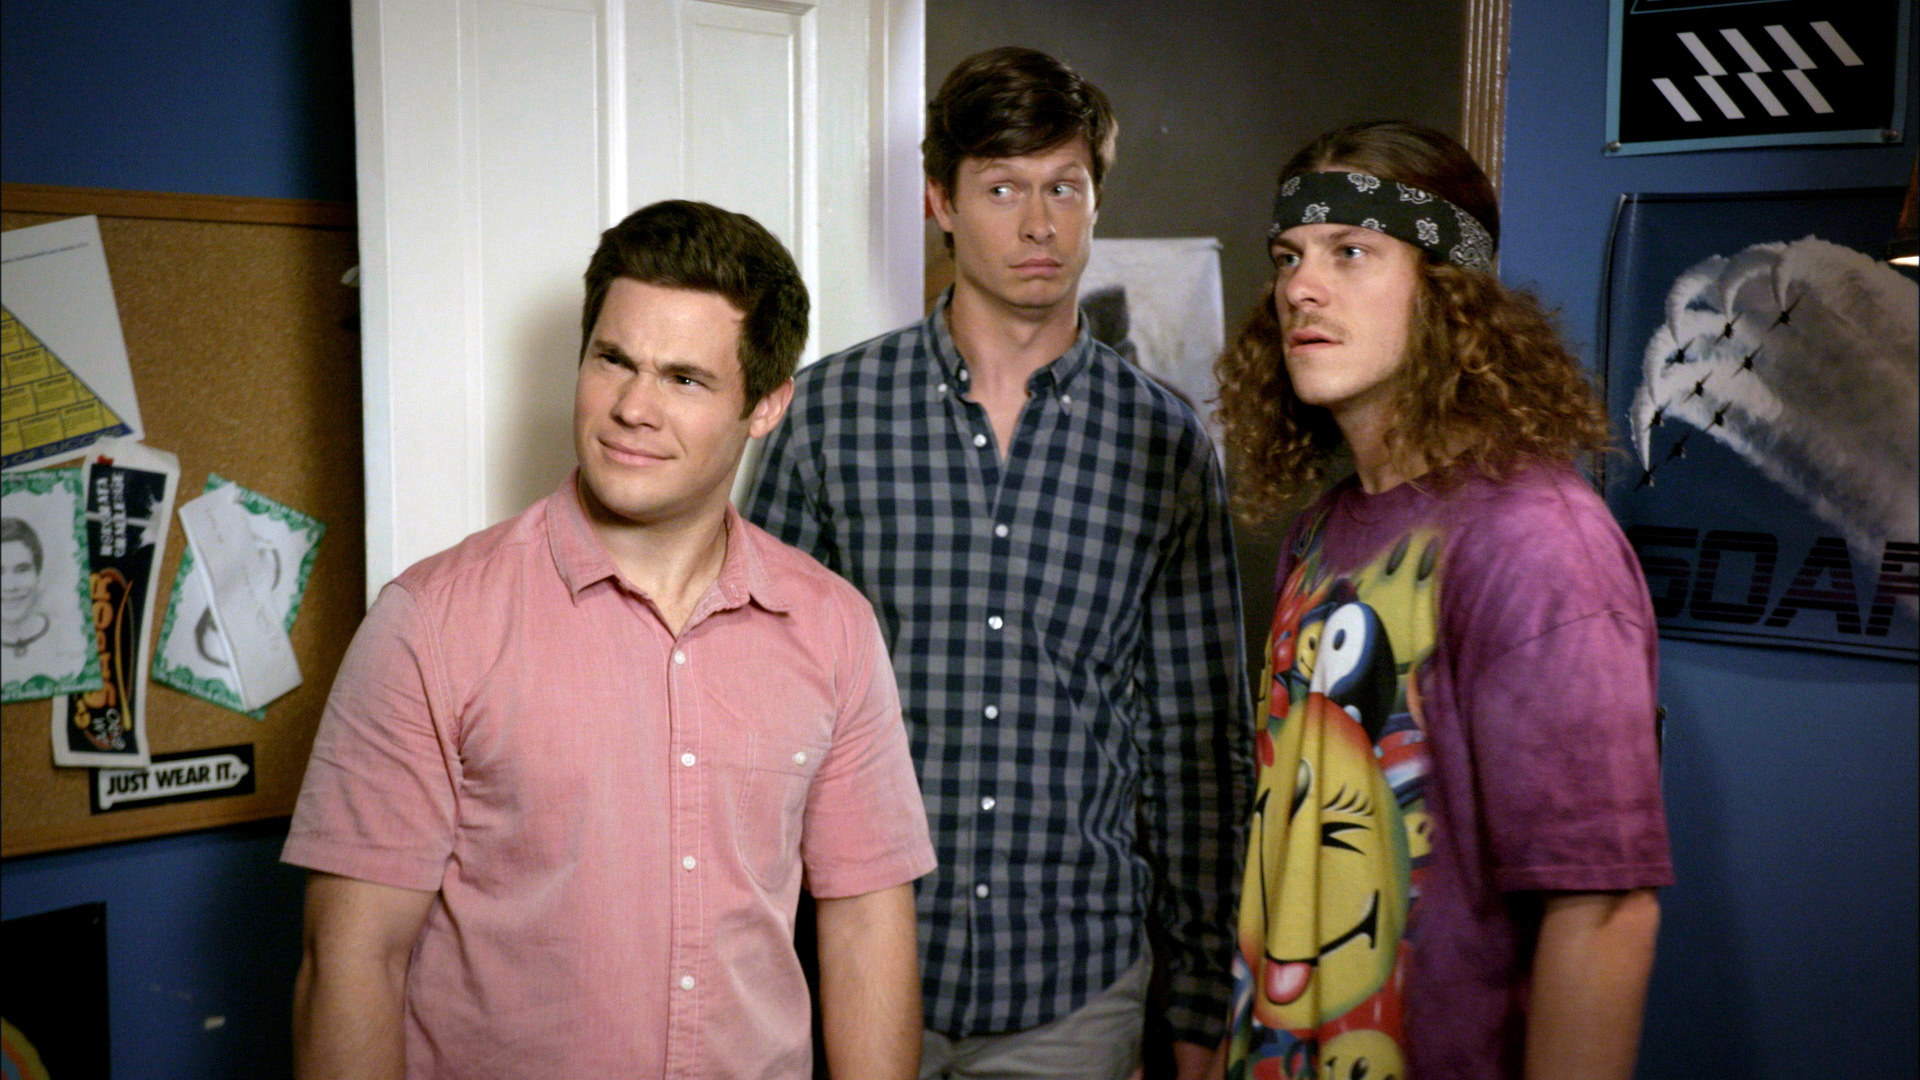 WORKAHOLICS, Adam Devine, Anders Holm, Blake Anderson in 'Termidate', (Season 7, Episode 708, aired March 1, 2017)